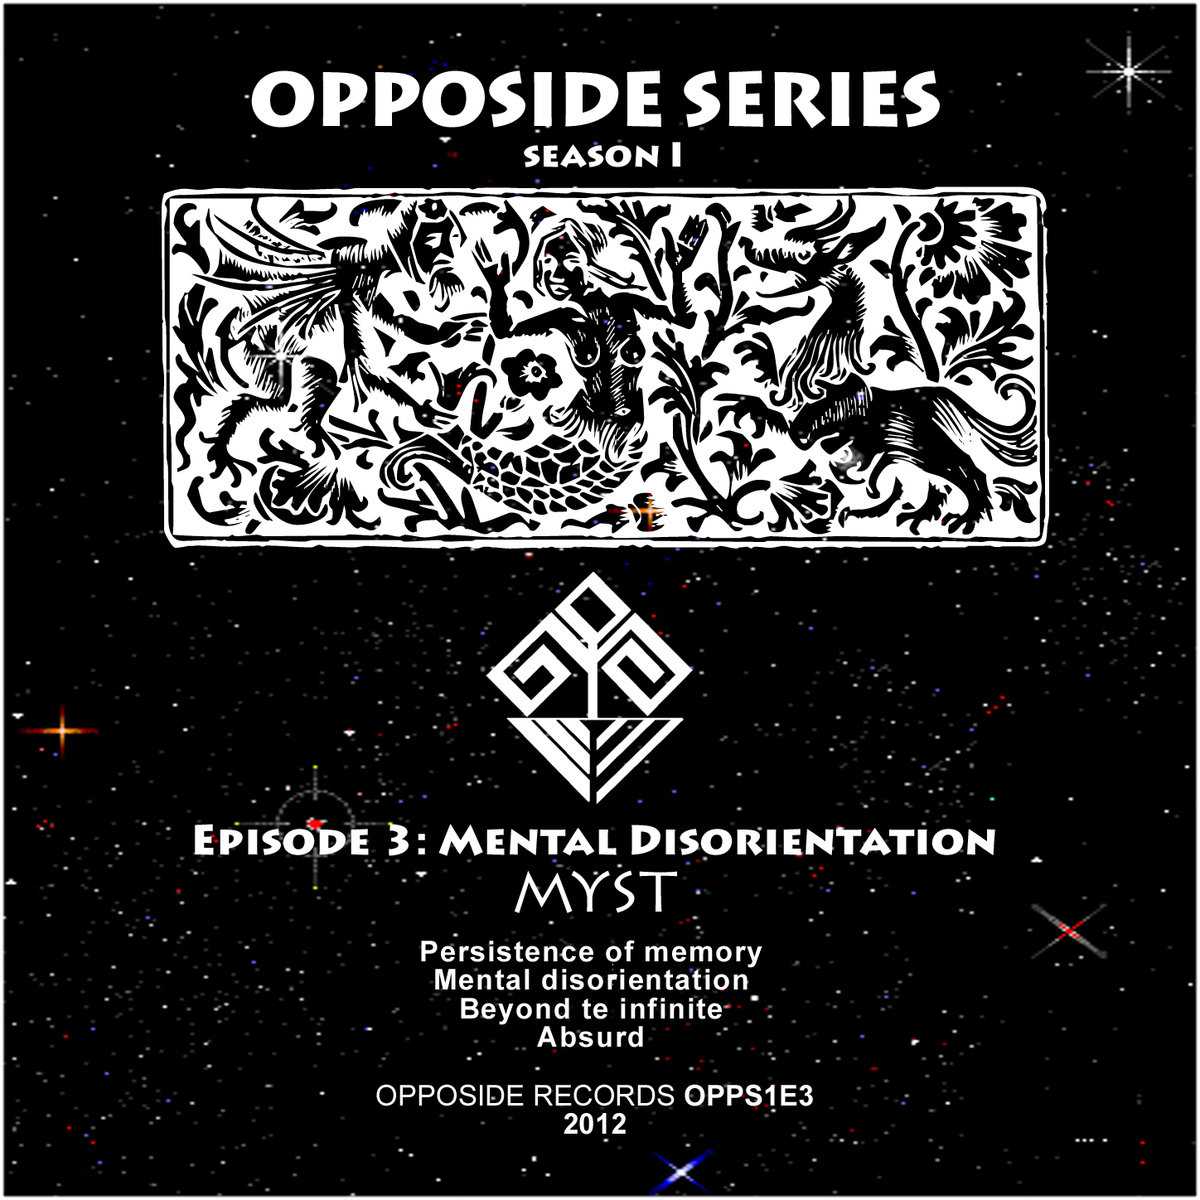 Myst - Mental Disorientation (artwork)